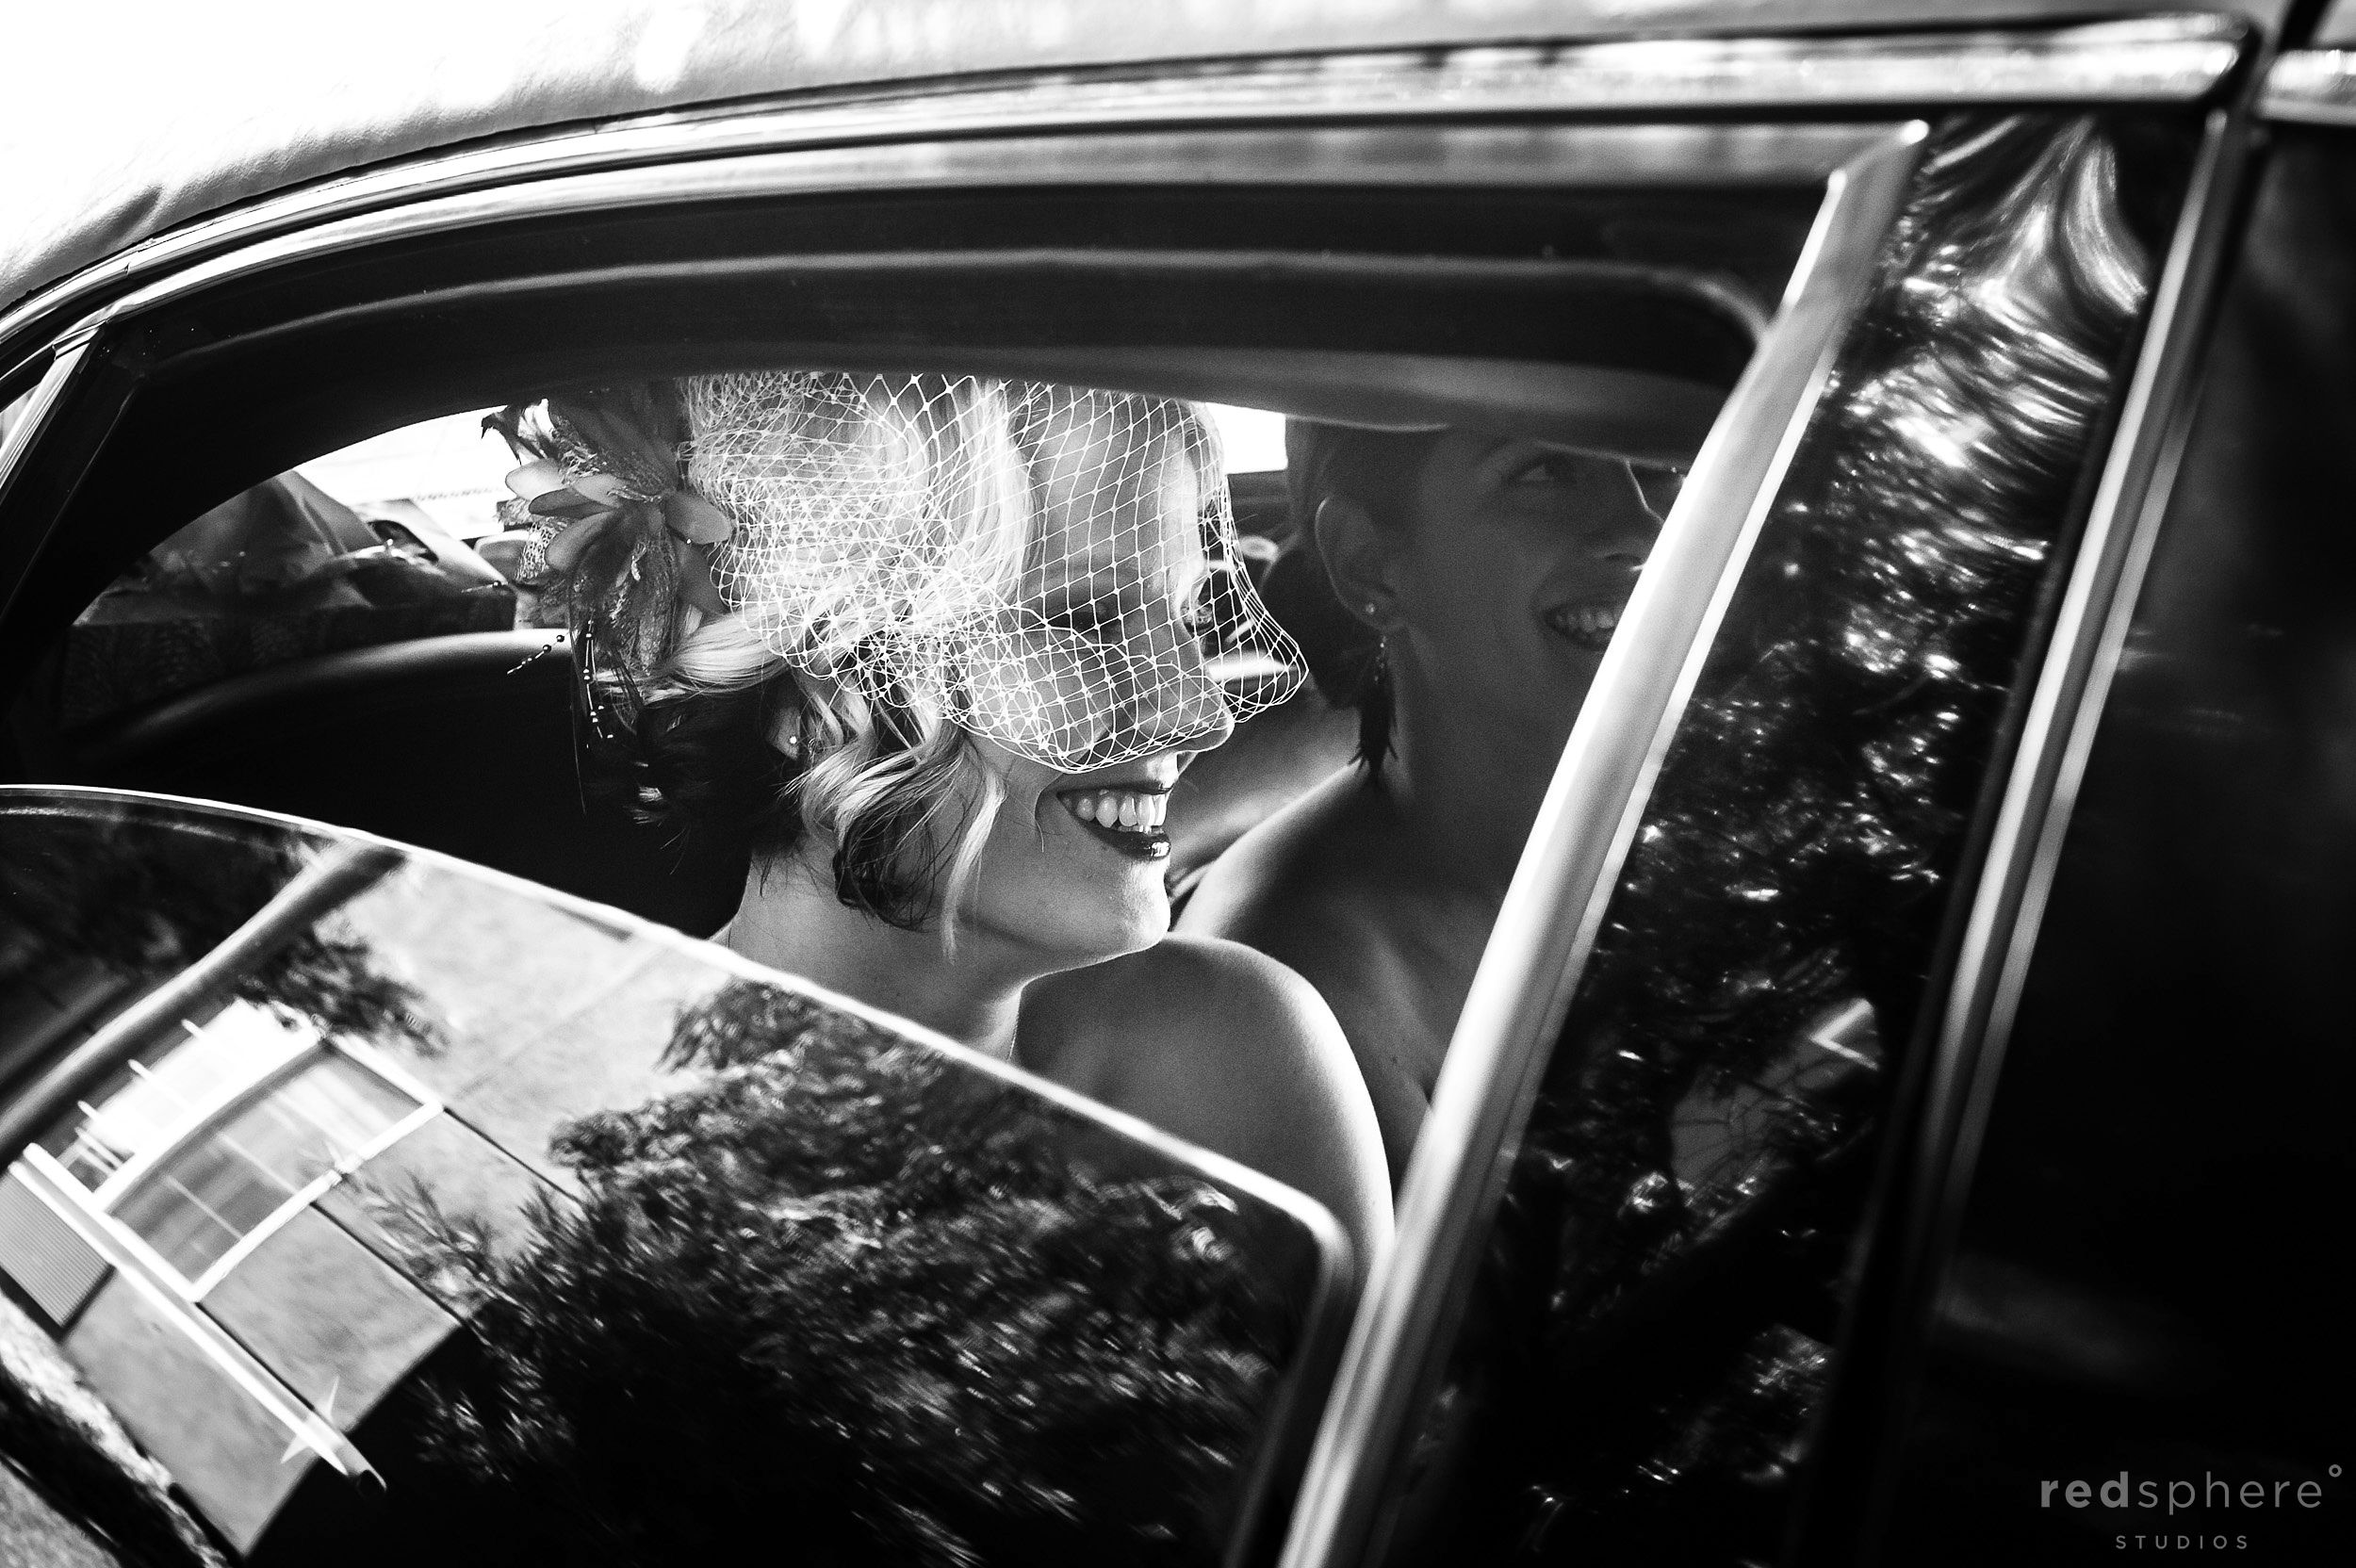 Bride With Wedding Veil In The Limo, Black and White Candid